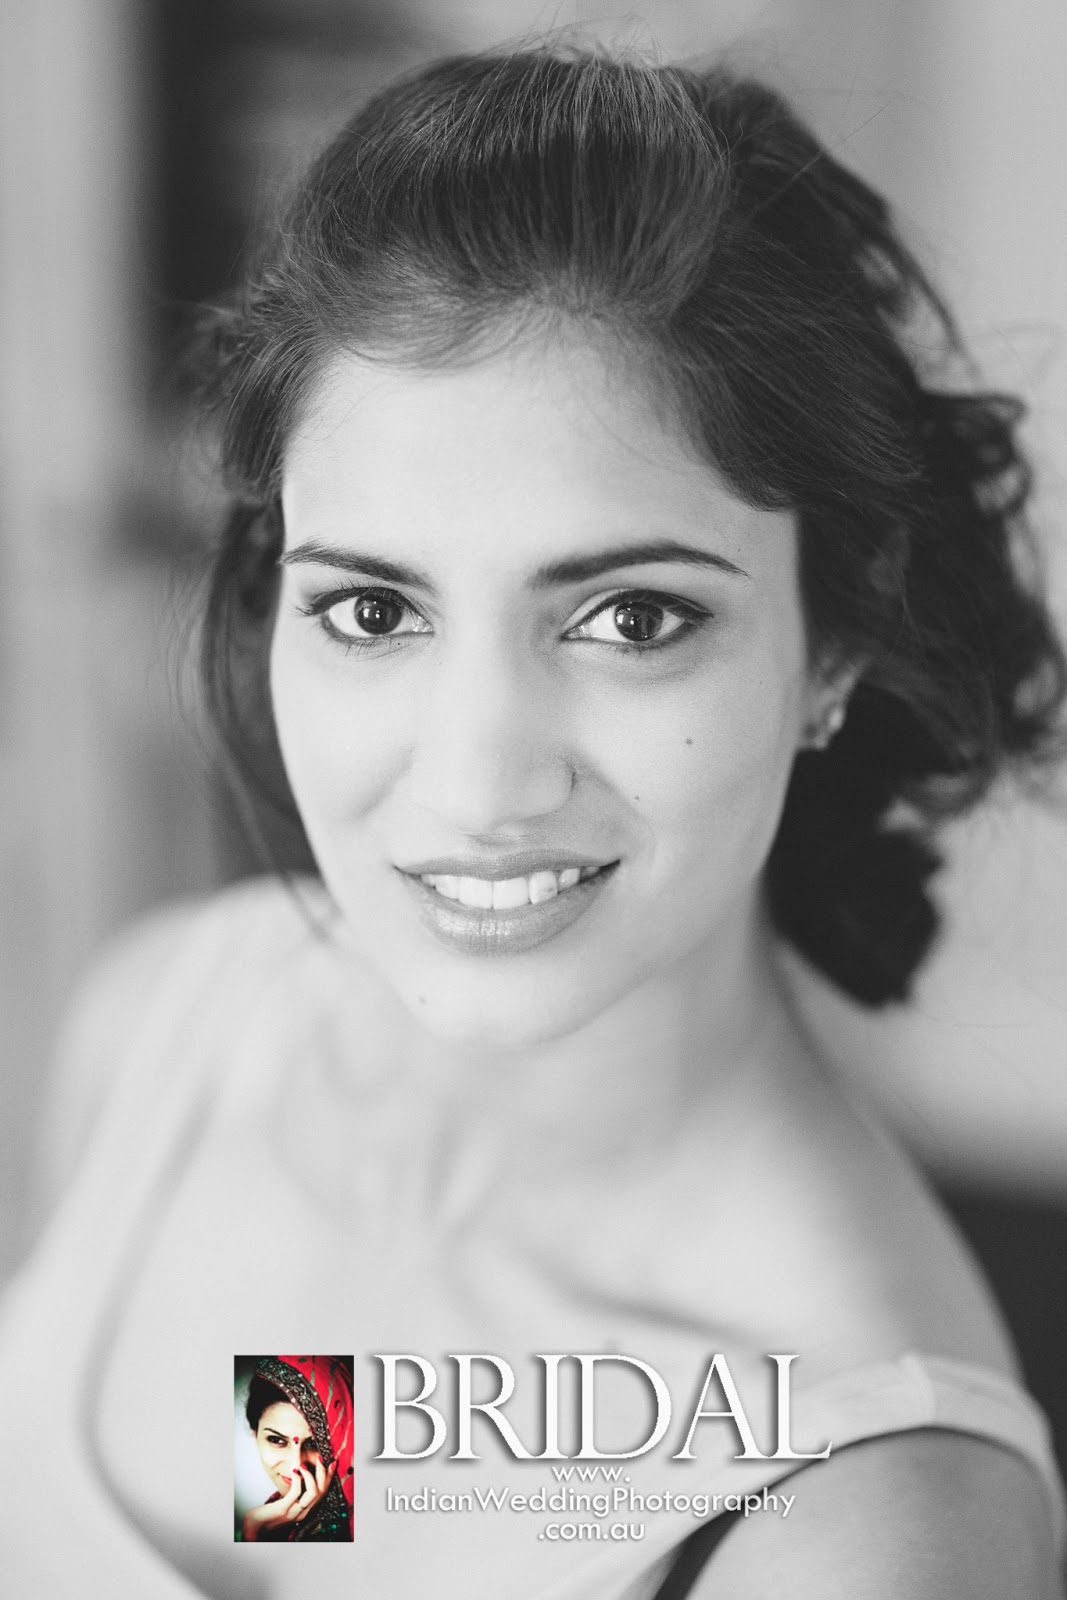 The Canberra Bride - A South Indian Bride\'s Photo-shoot (Bridal)